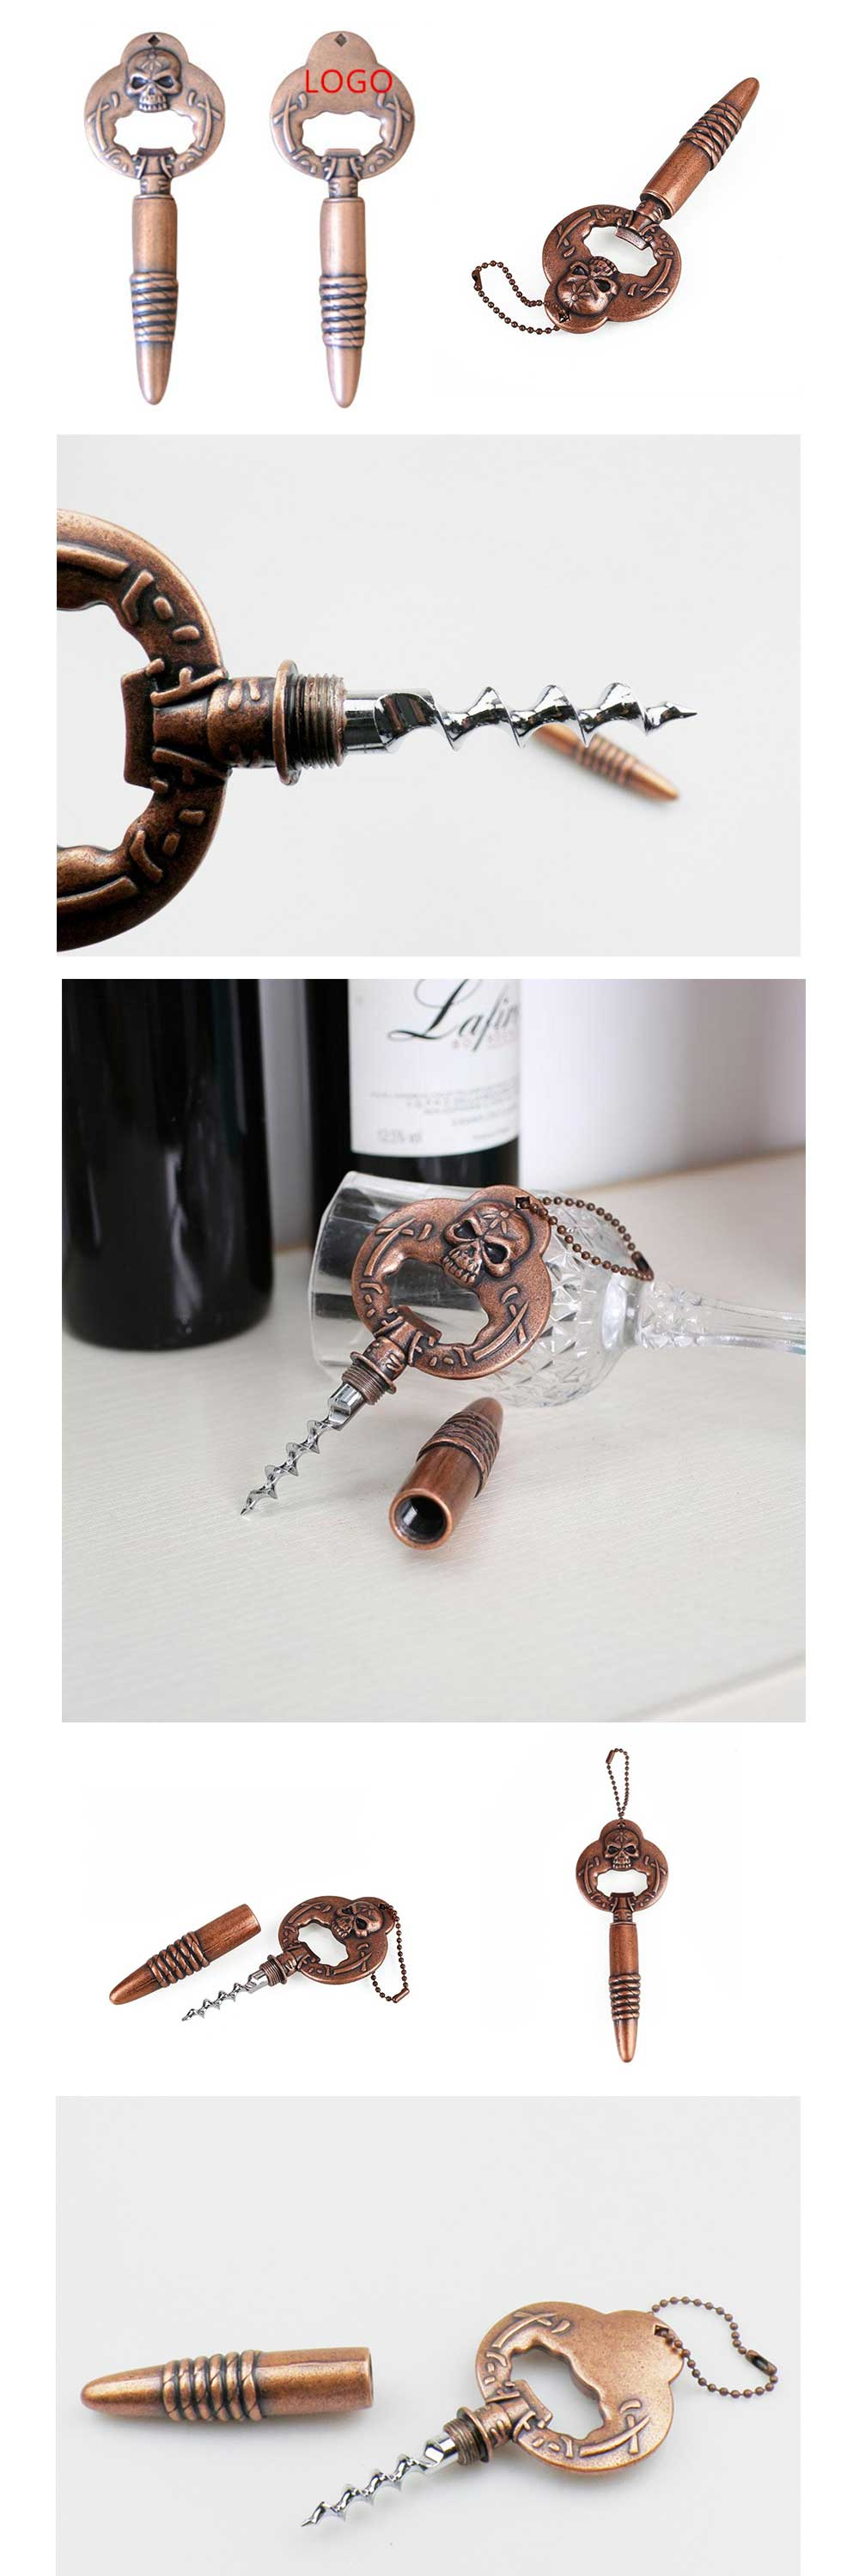 Skull 2 in 1 Beer Bottle Opener Creative Design